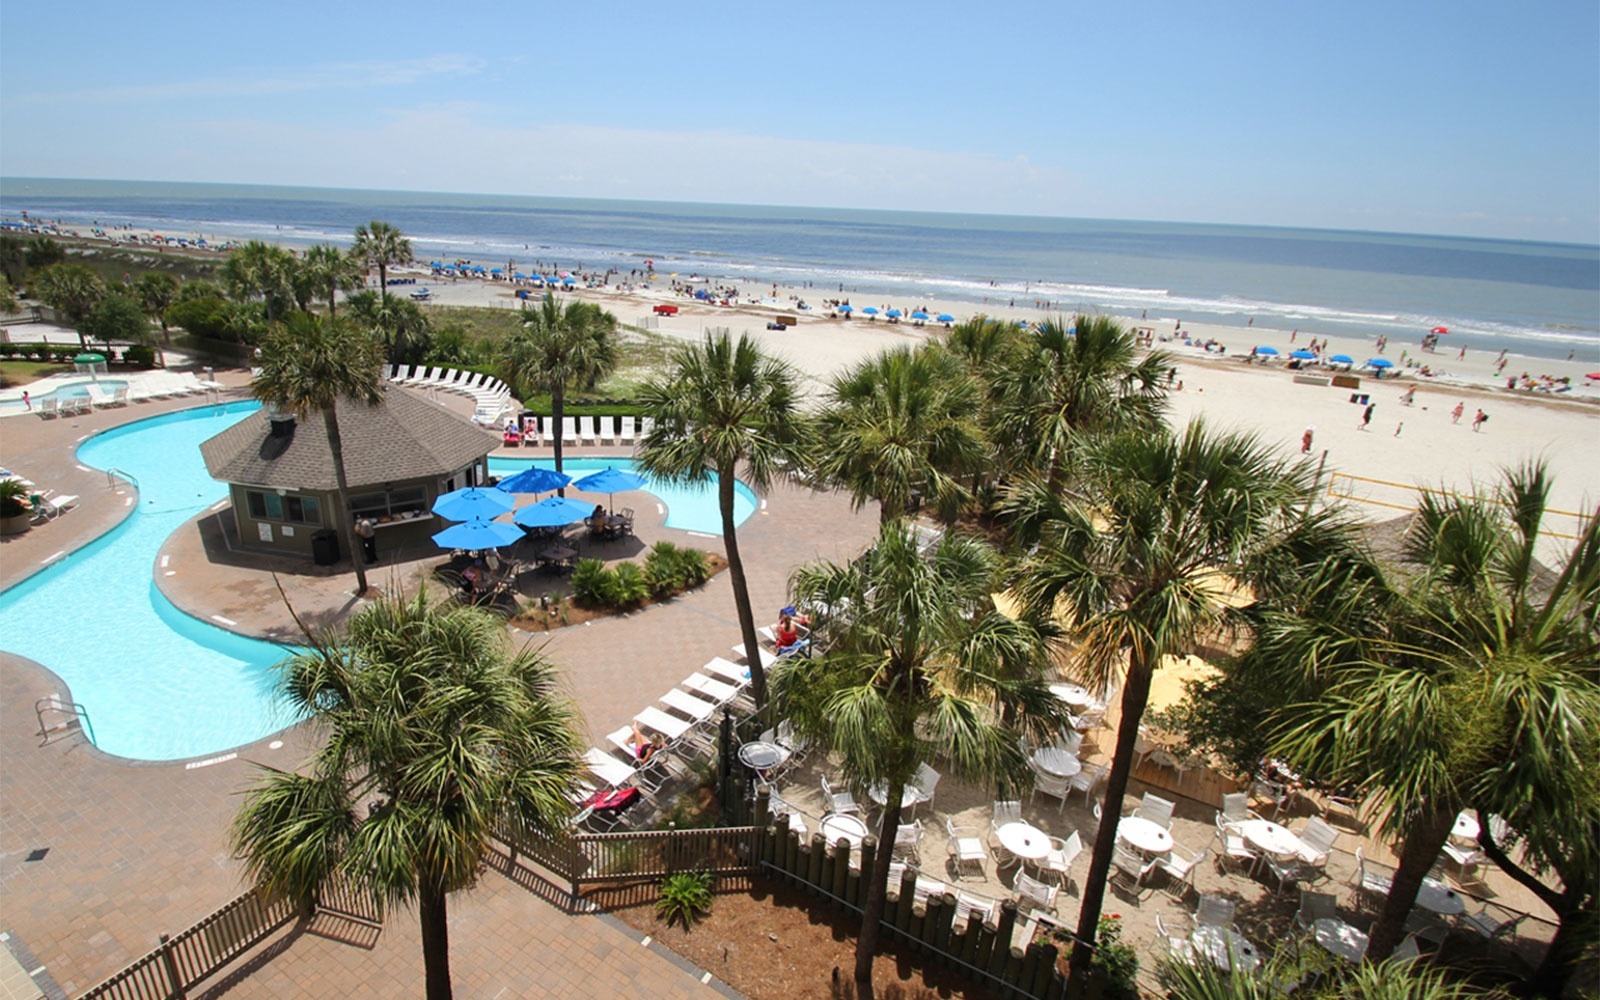 The Beach House, a Holiday Inn Resort, Hilton Head, SC